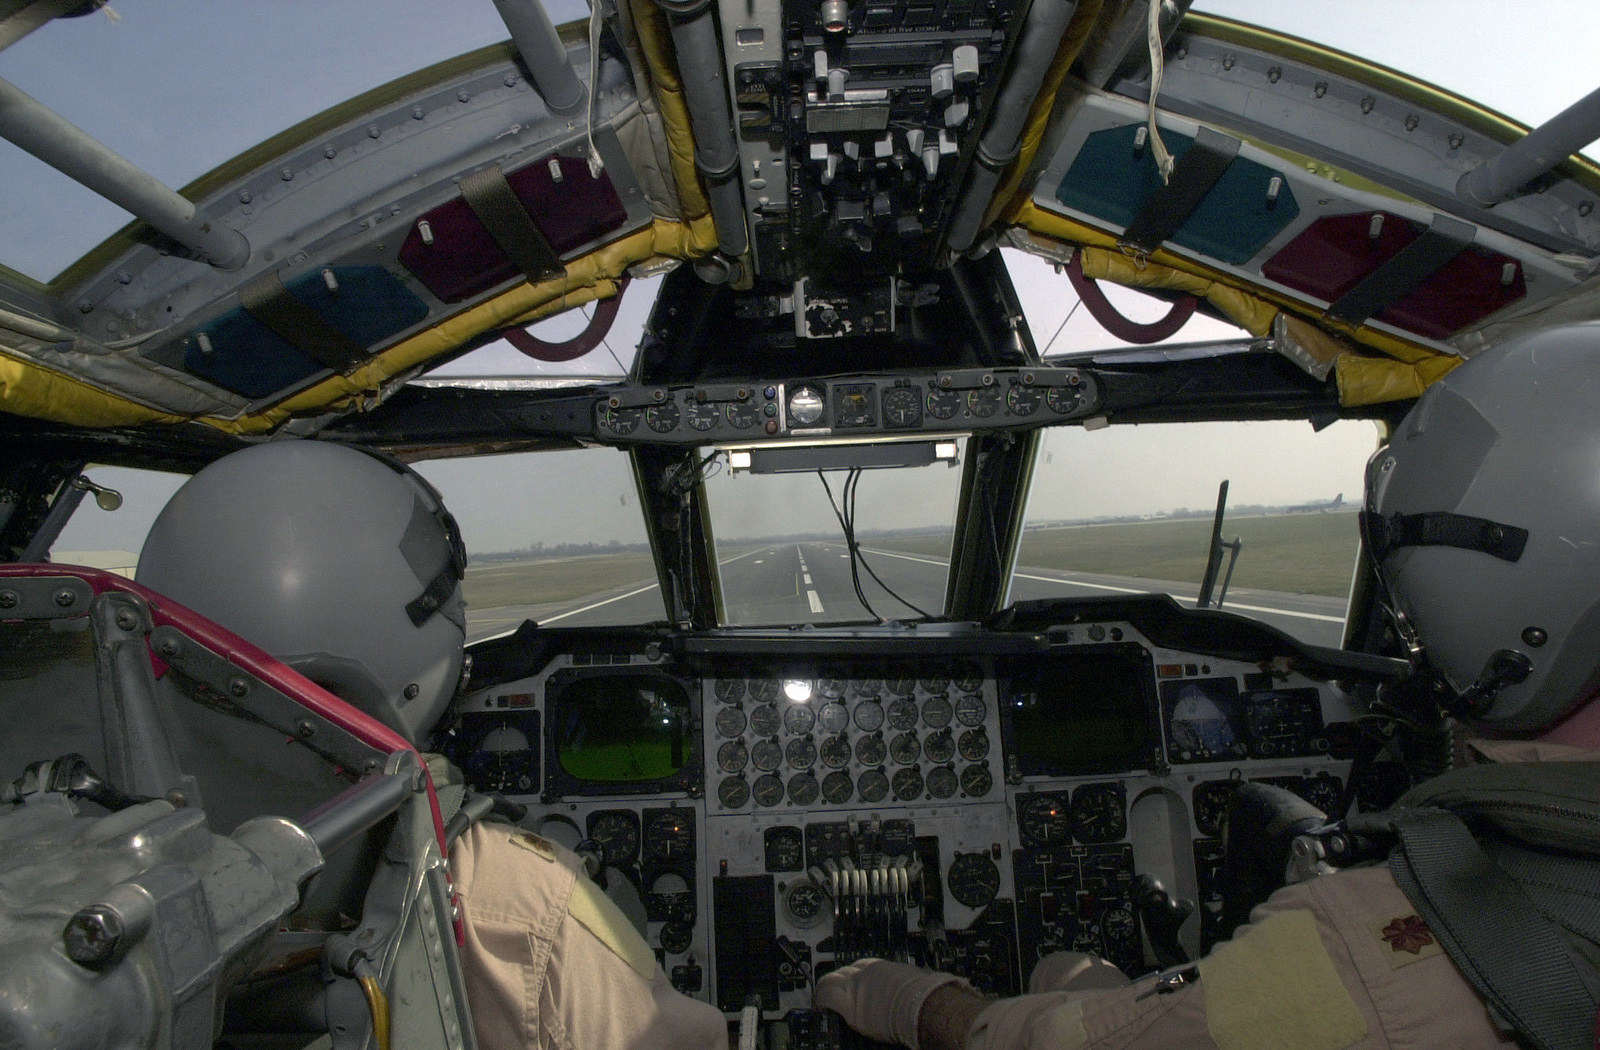 A navigators point of view onboard a US Air Force (USAF) B-52H Stratofortress aircraft assigned to the, 457th Air Expeditionary Group, 23rd Expeditionary Bomb Squadron, taking off at Minot AFB, North Dakota (ND), for a mission over Iraq, in support of Operation IRAQI FREEDOM